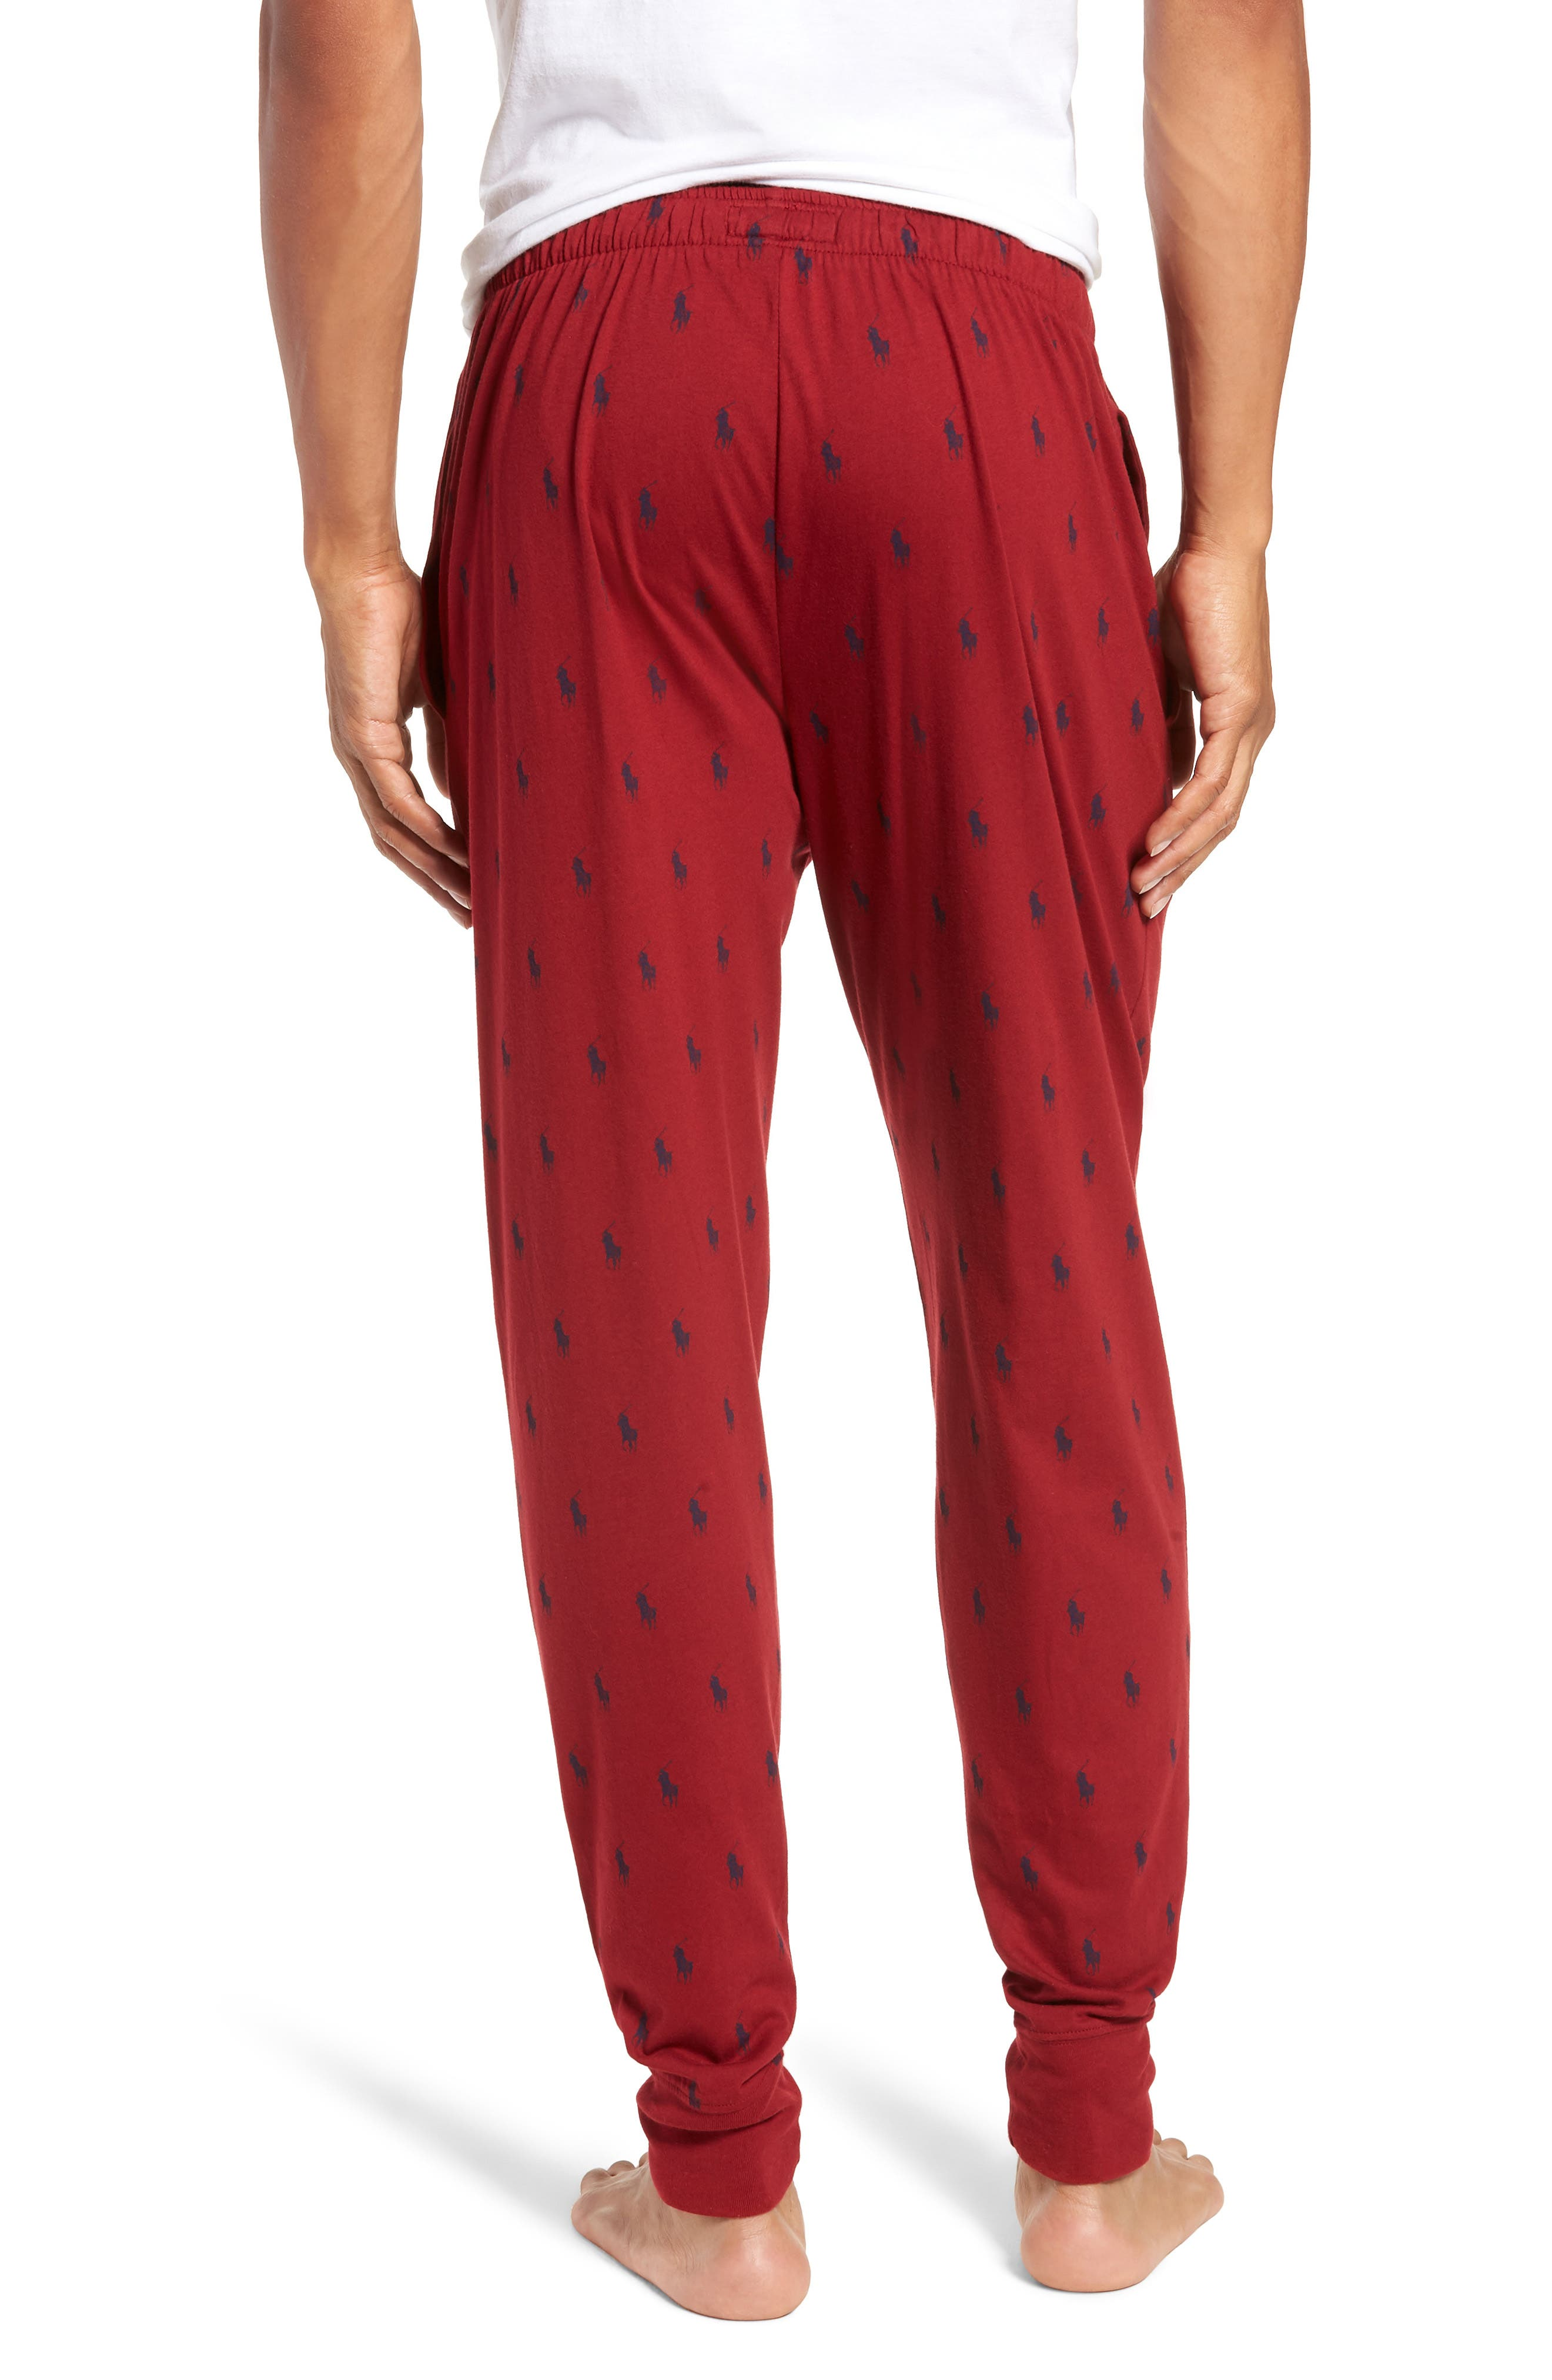 Cotton Lounge Pants,                             Alternate thumbnail 2, color,                             HOLIDAY RED/ CRUISE NAVY